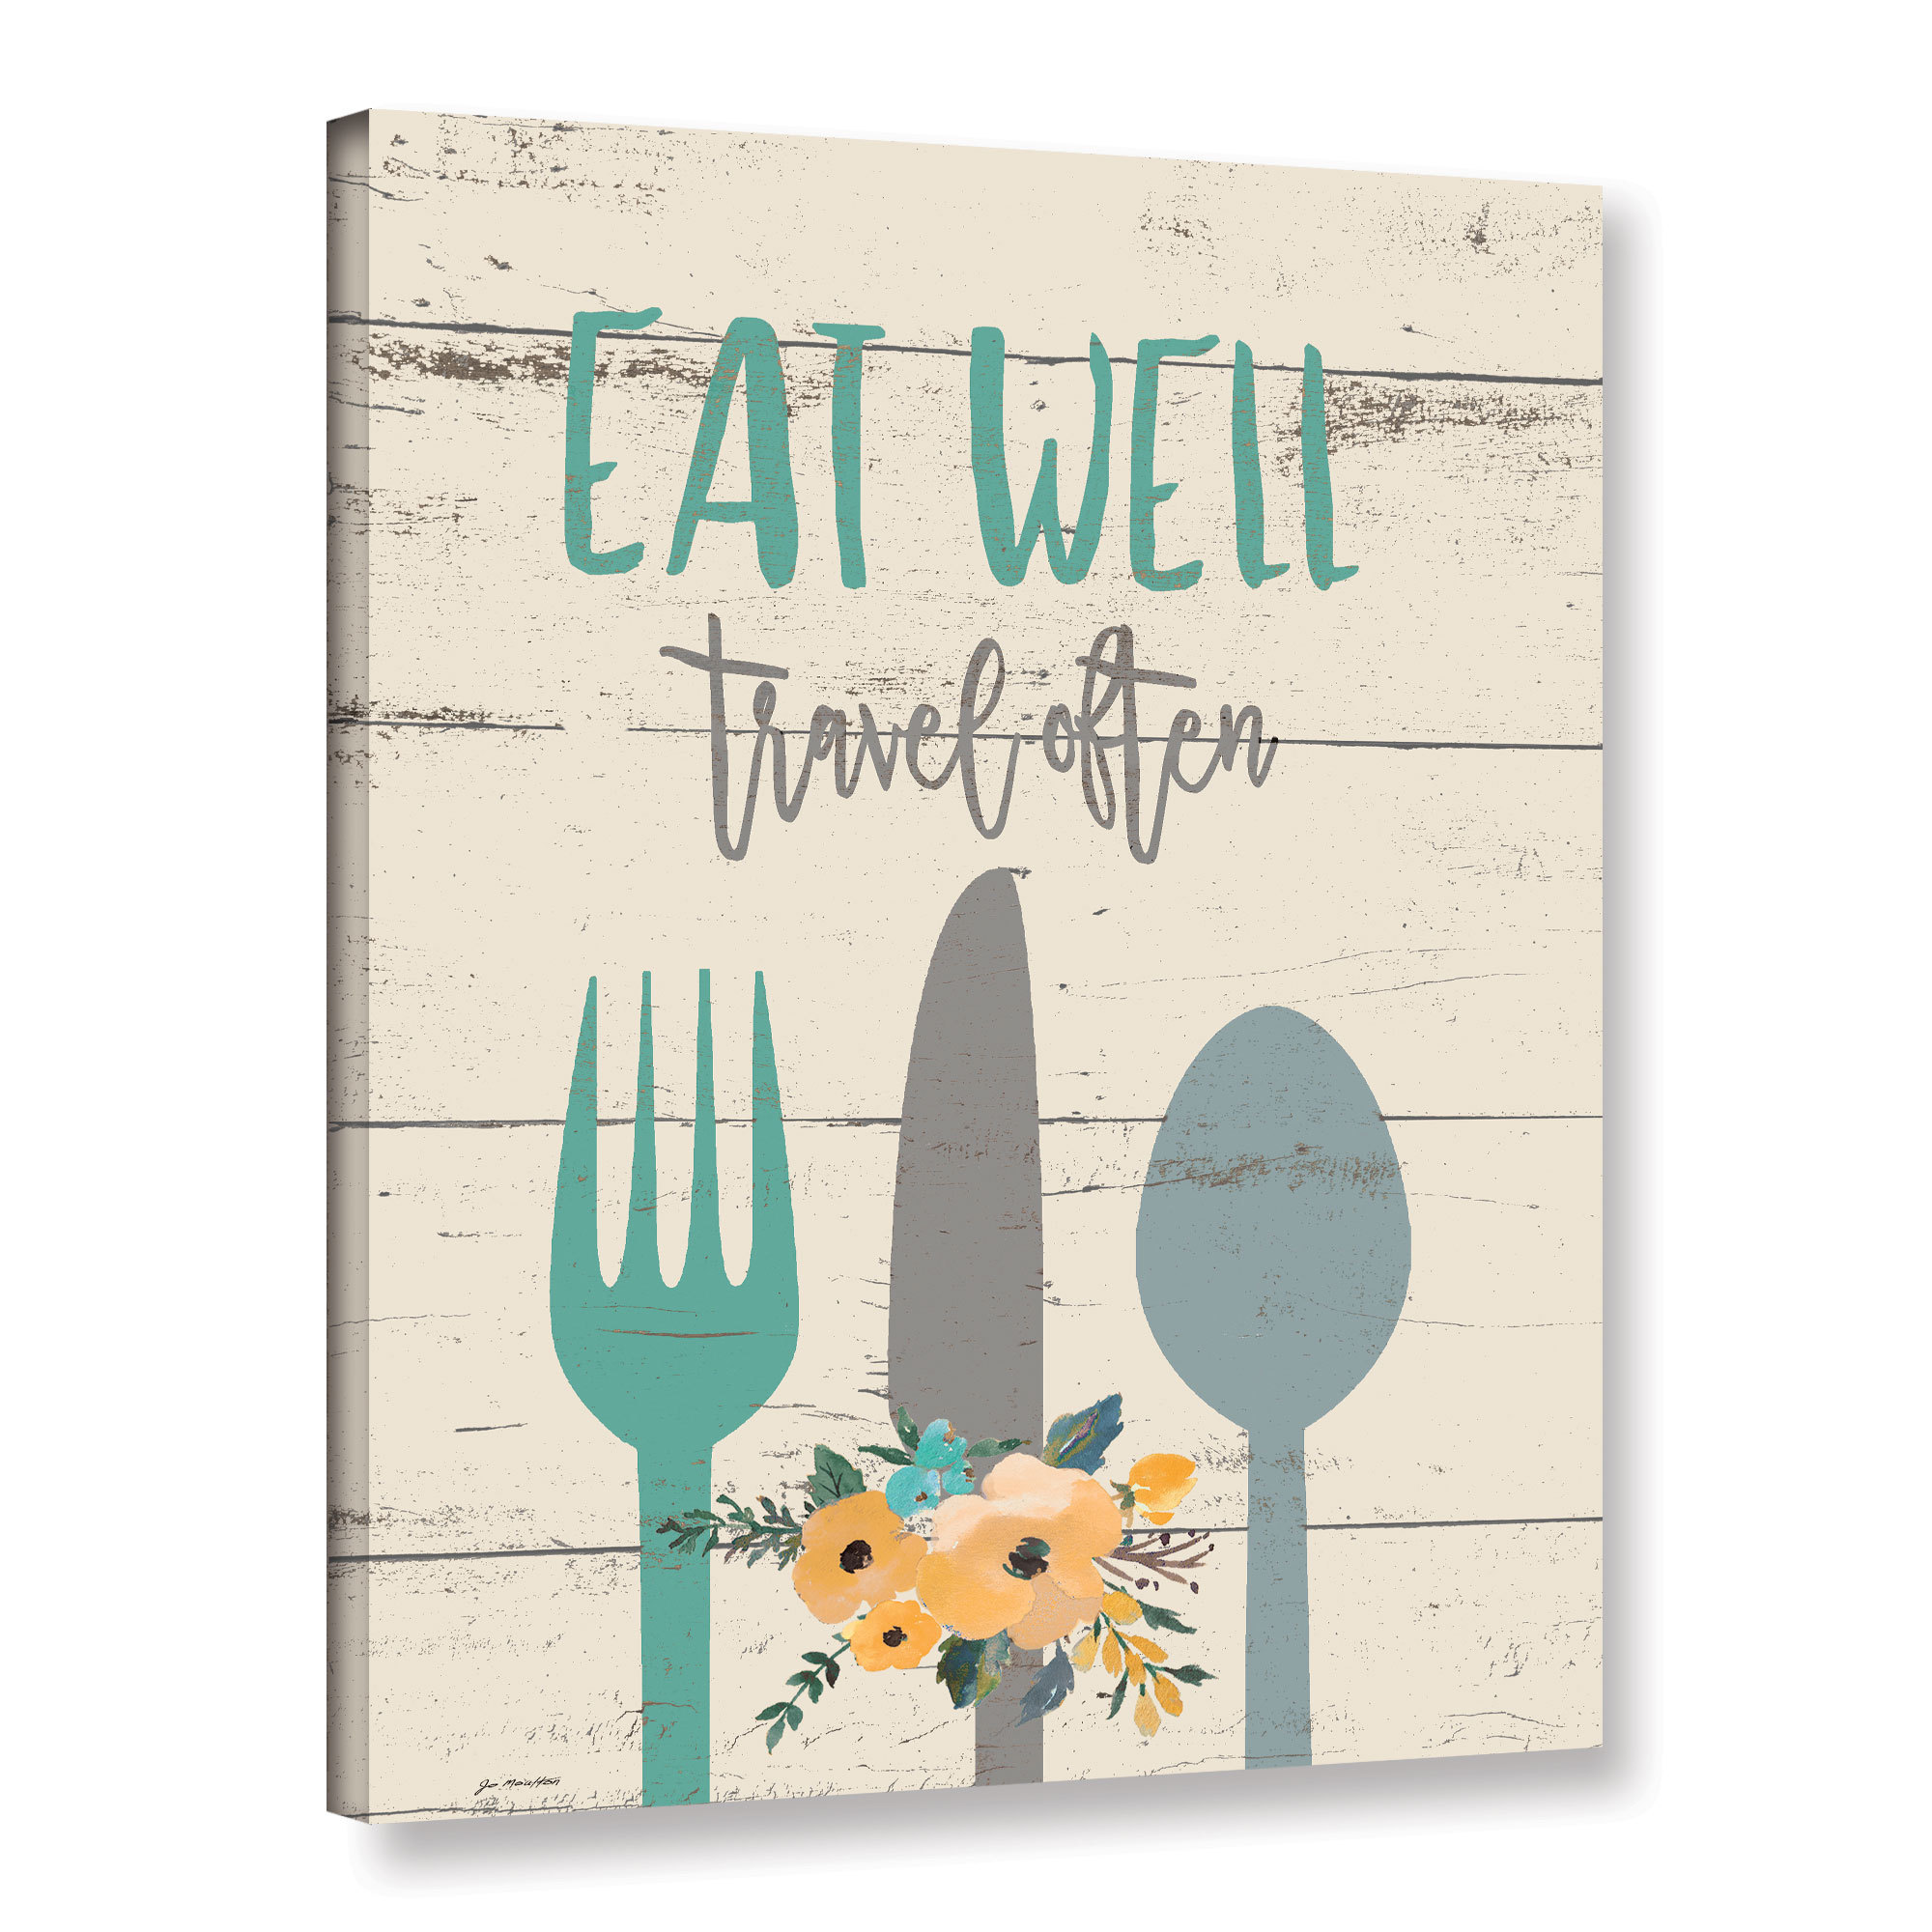 ArtWall Jo Moulton's 'Eat Well' Gallery Wrapped Canvas (2...